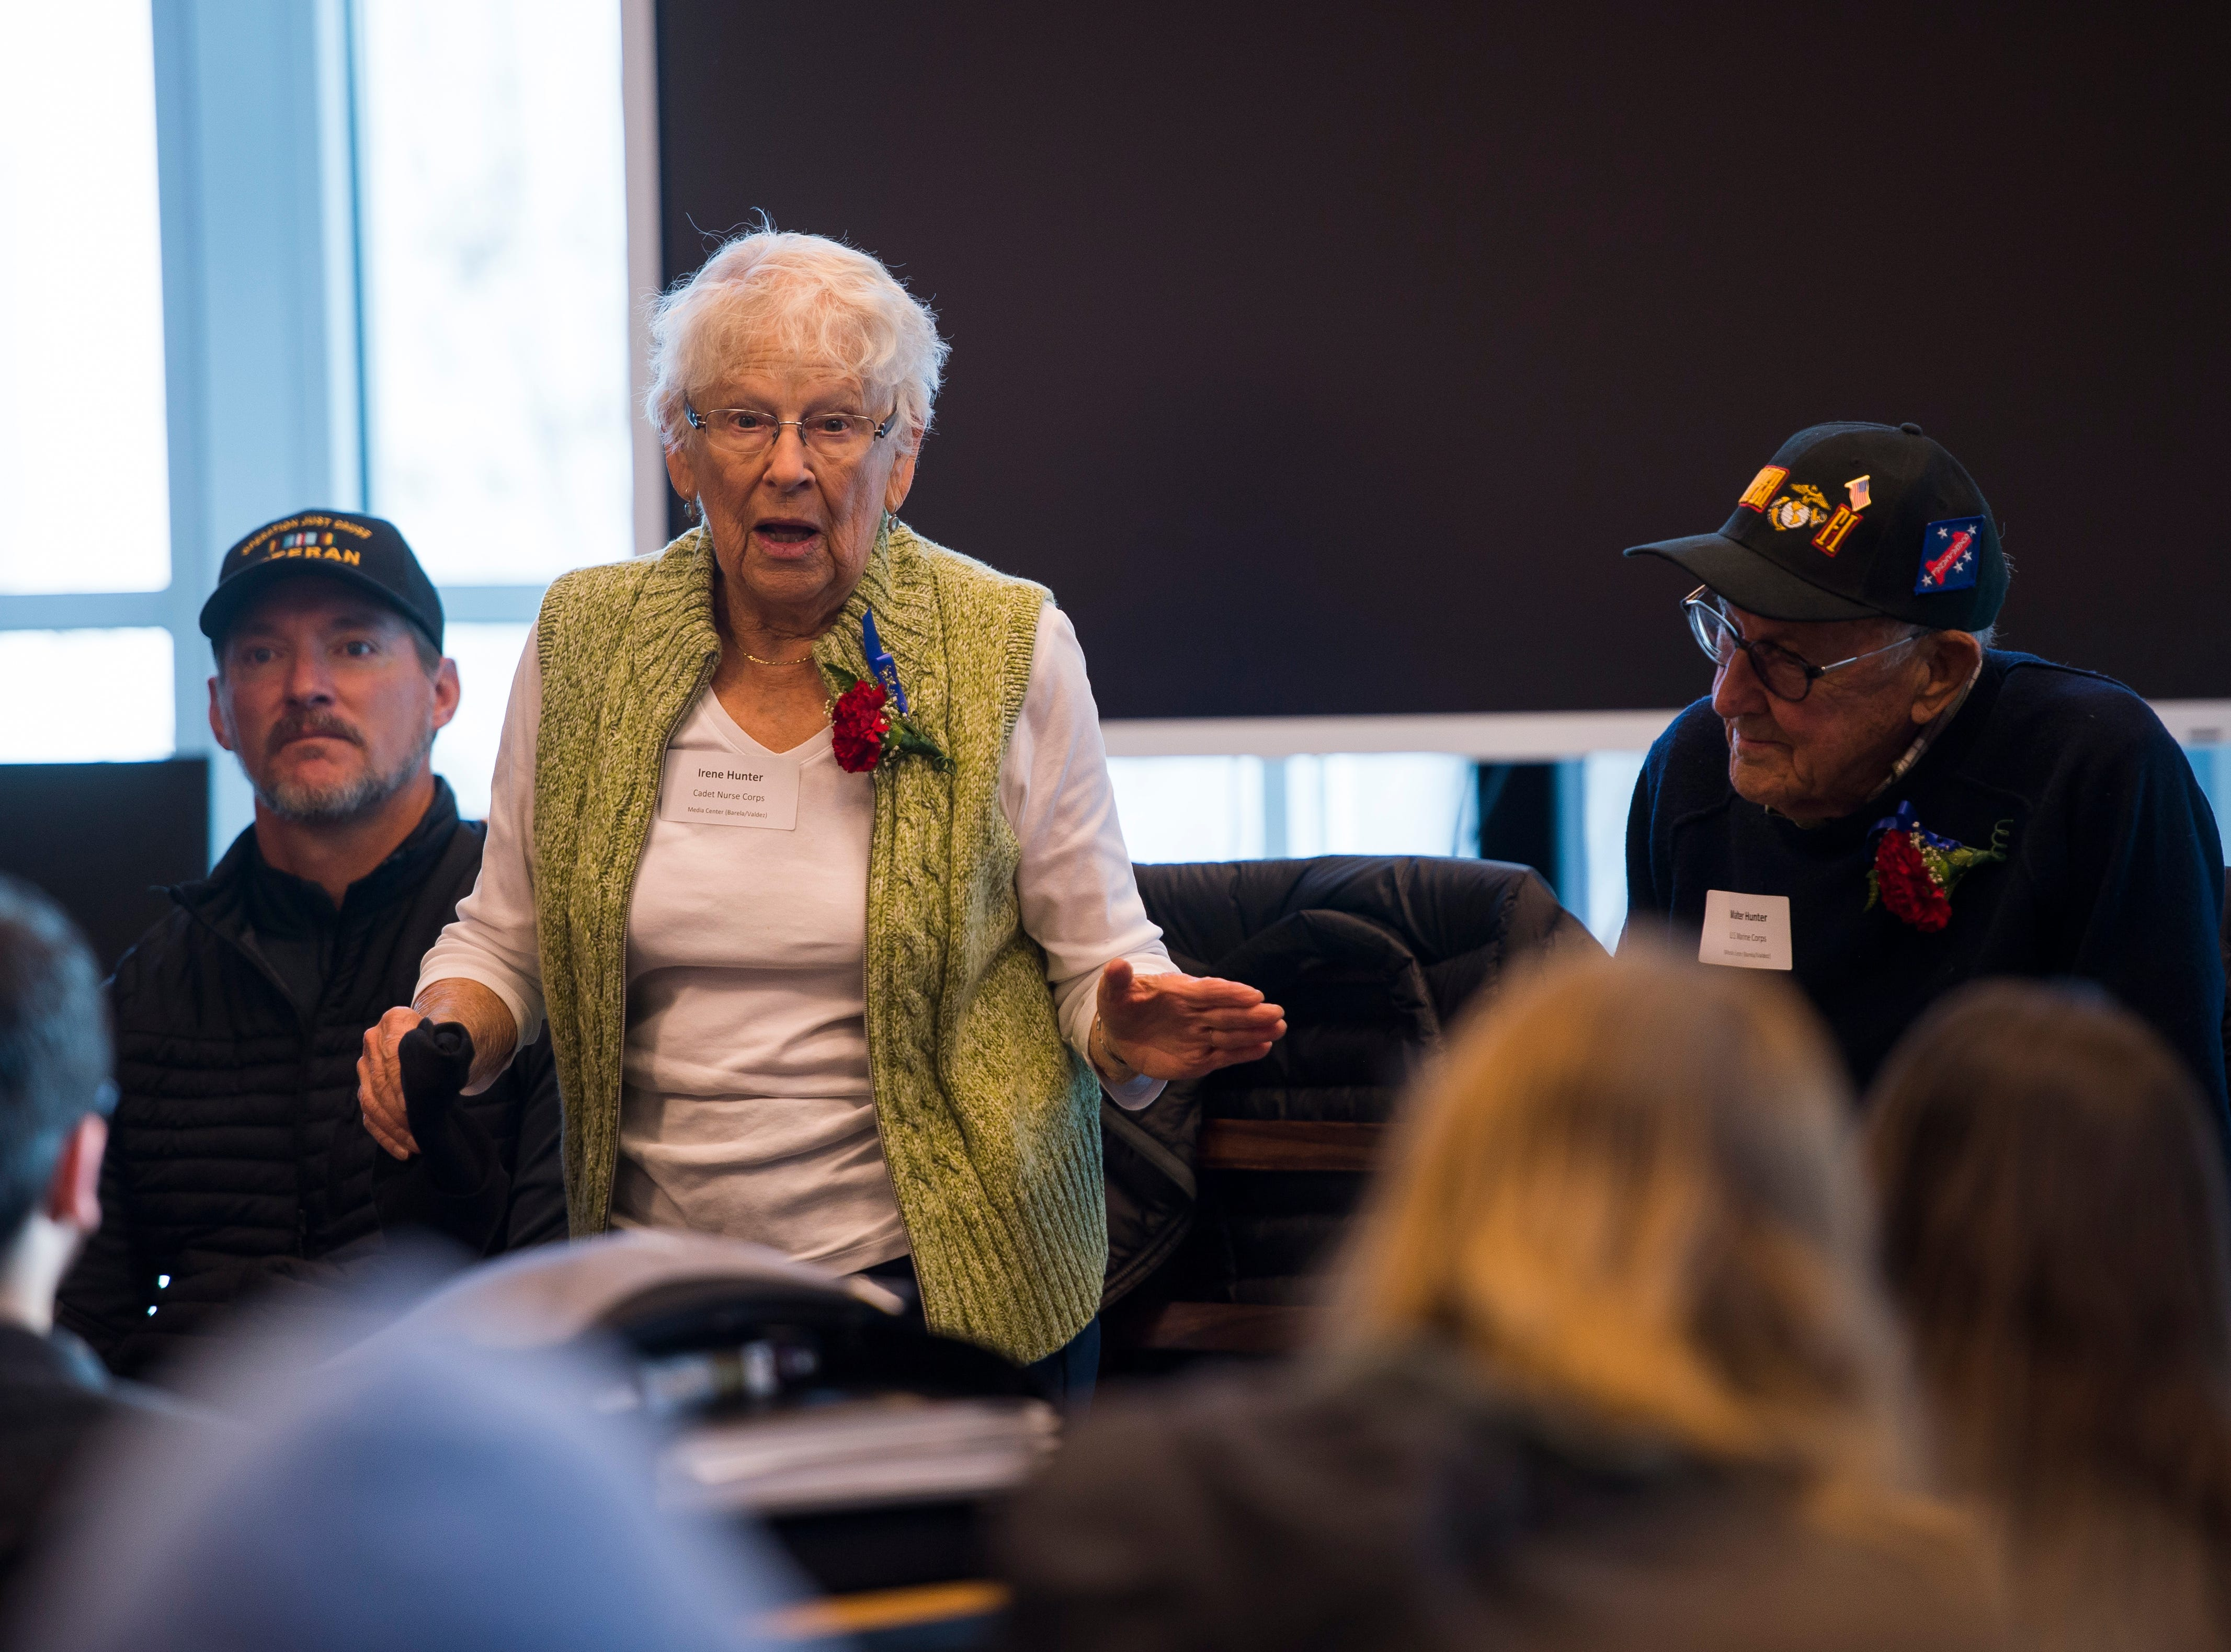 World War II Cadet Nurse Corps veteran Irene Hunter speaks to a class at Preston Middle School's fourth annual Veterans Day Breakfast on Friday, Nov. 9, 2018, at Preston Middle School in Fort Collins, Colo.